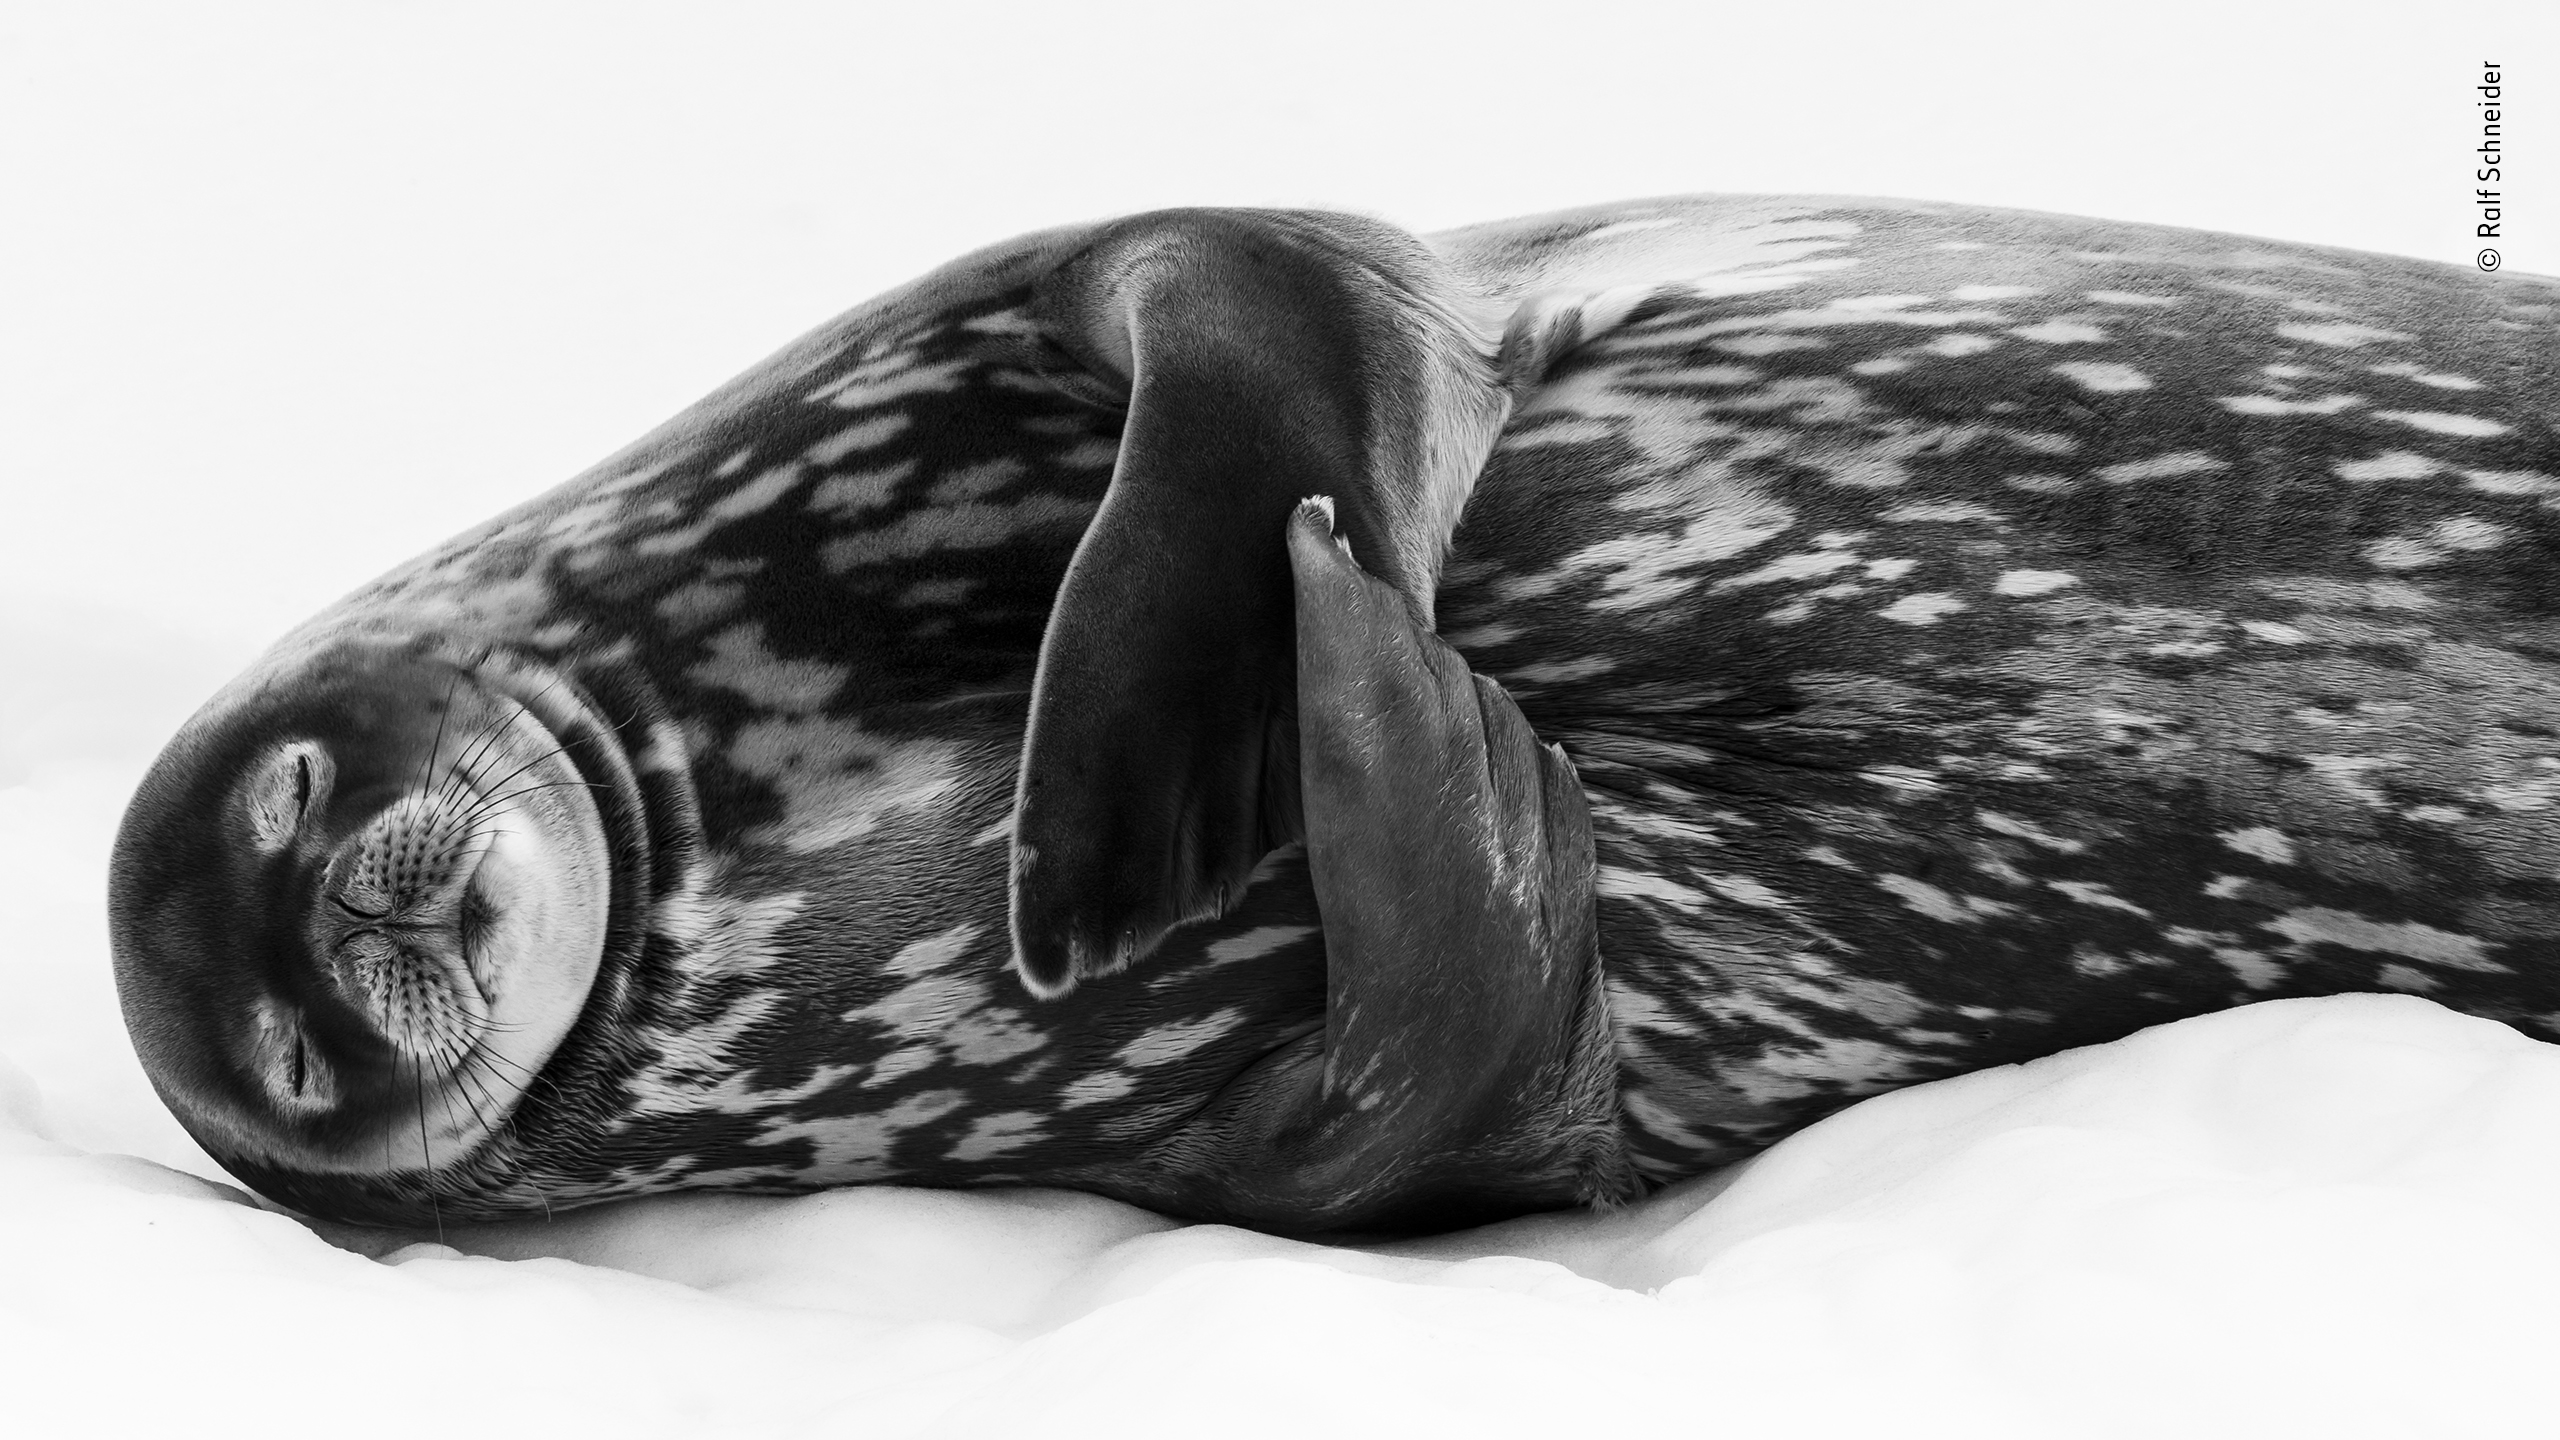 Sleeping like a Weddell by Ralf Schneider, Highly Commended 2019, Black and White